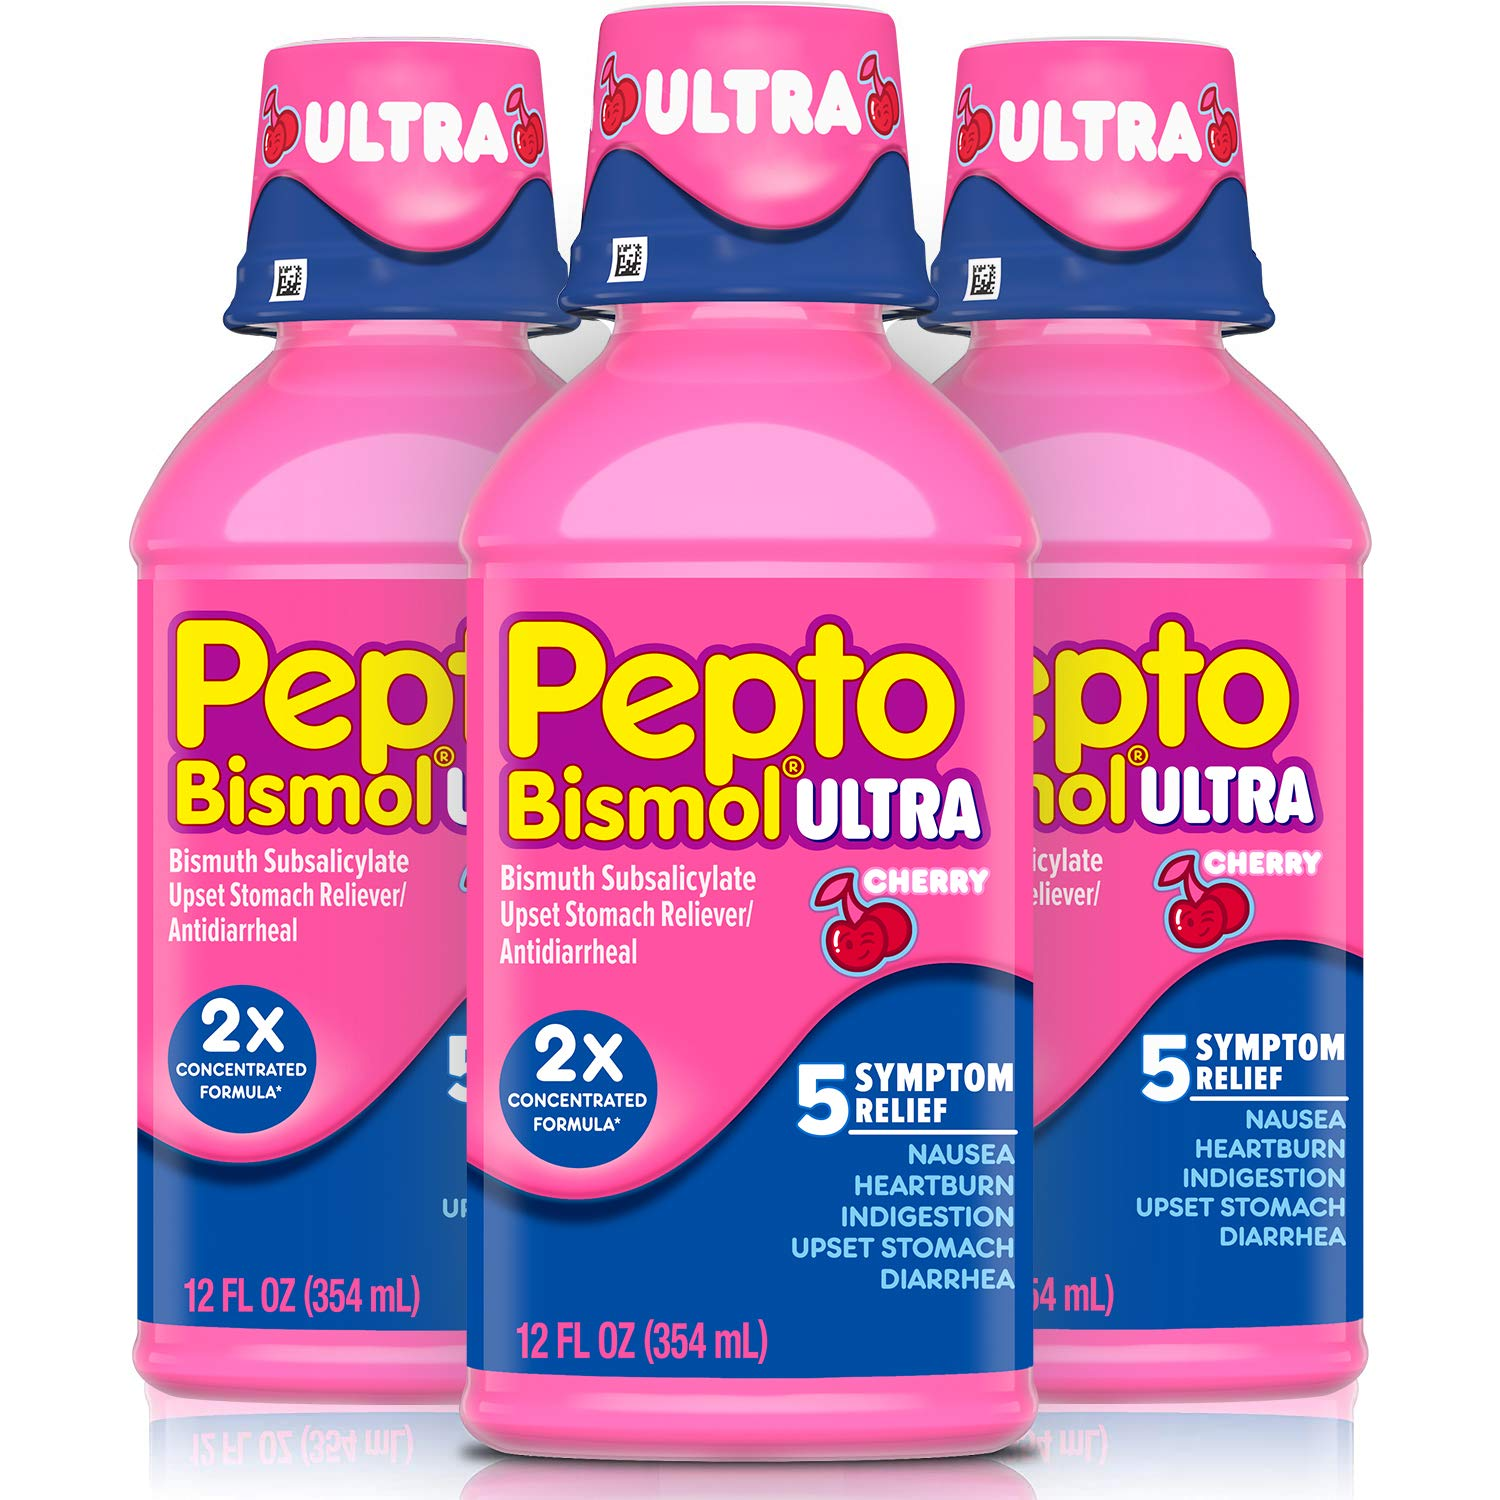 Pepto Bismol Ultra Liquid, 2X Concentrated Formula, Upset Stomach Relief, Bismuth Subsalicylate, Multi-Symptom Gas, Nausea, Heartburn, Indigestion, Diarrhea Relief, Cherry, 12 OZ Liquid (3 Pack)